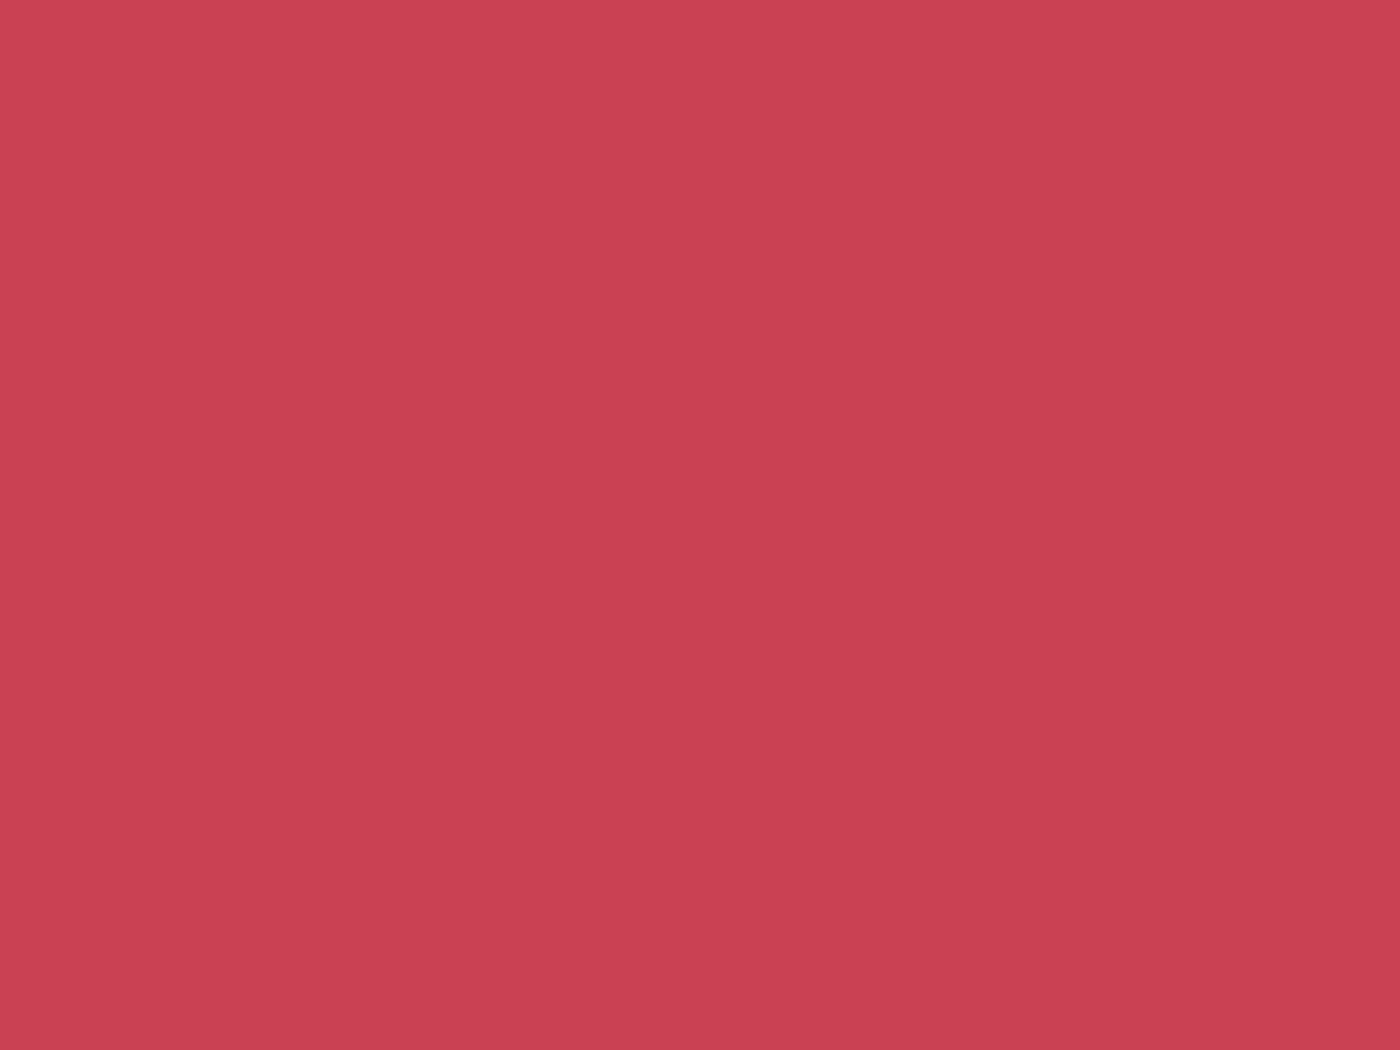 1400x1050 Brick Red Solid Color Background